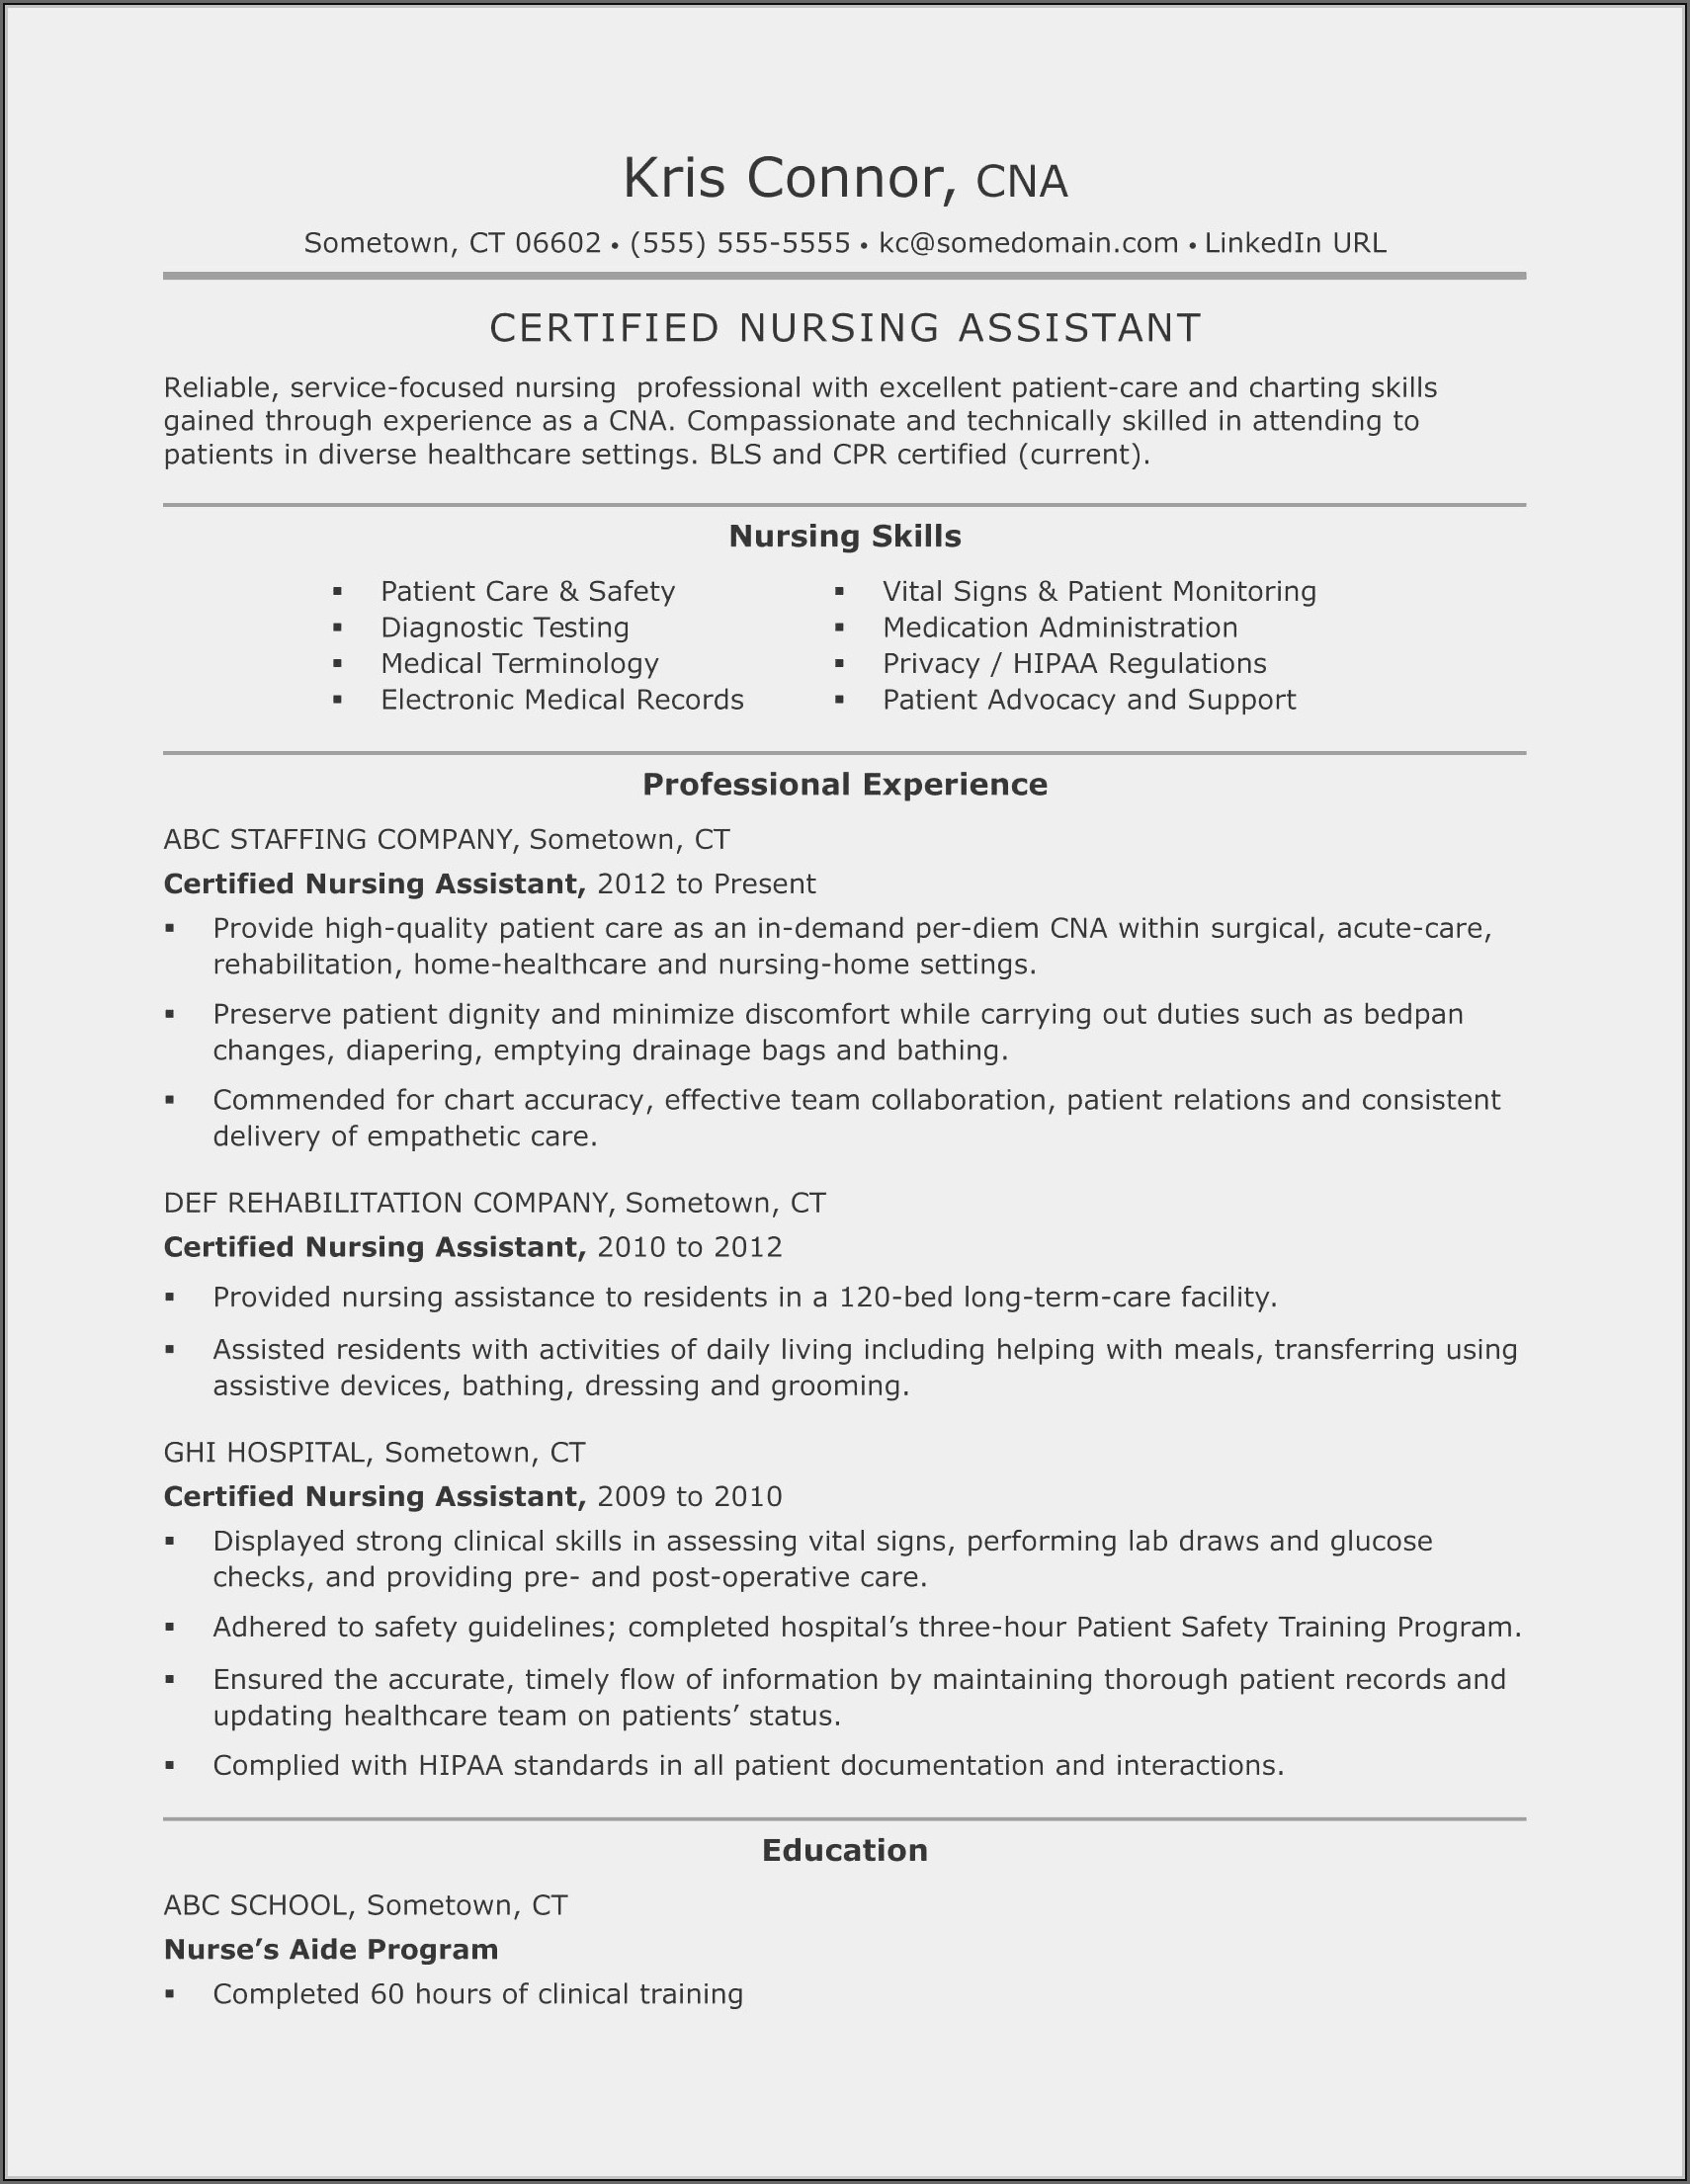 Sample Resume For Applying Nursing Assistant